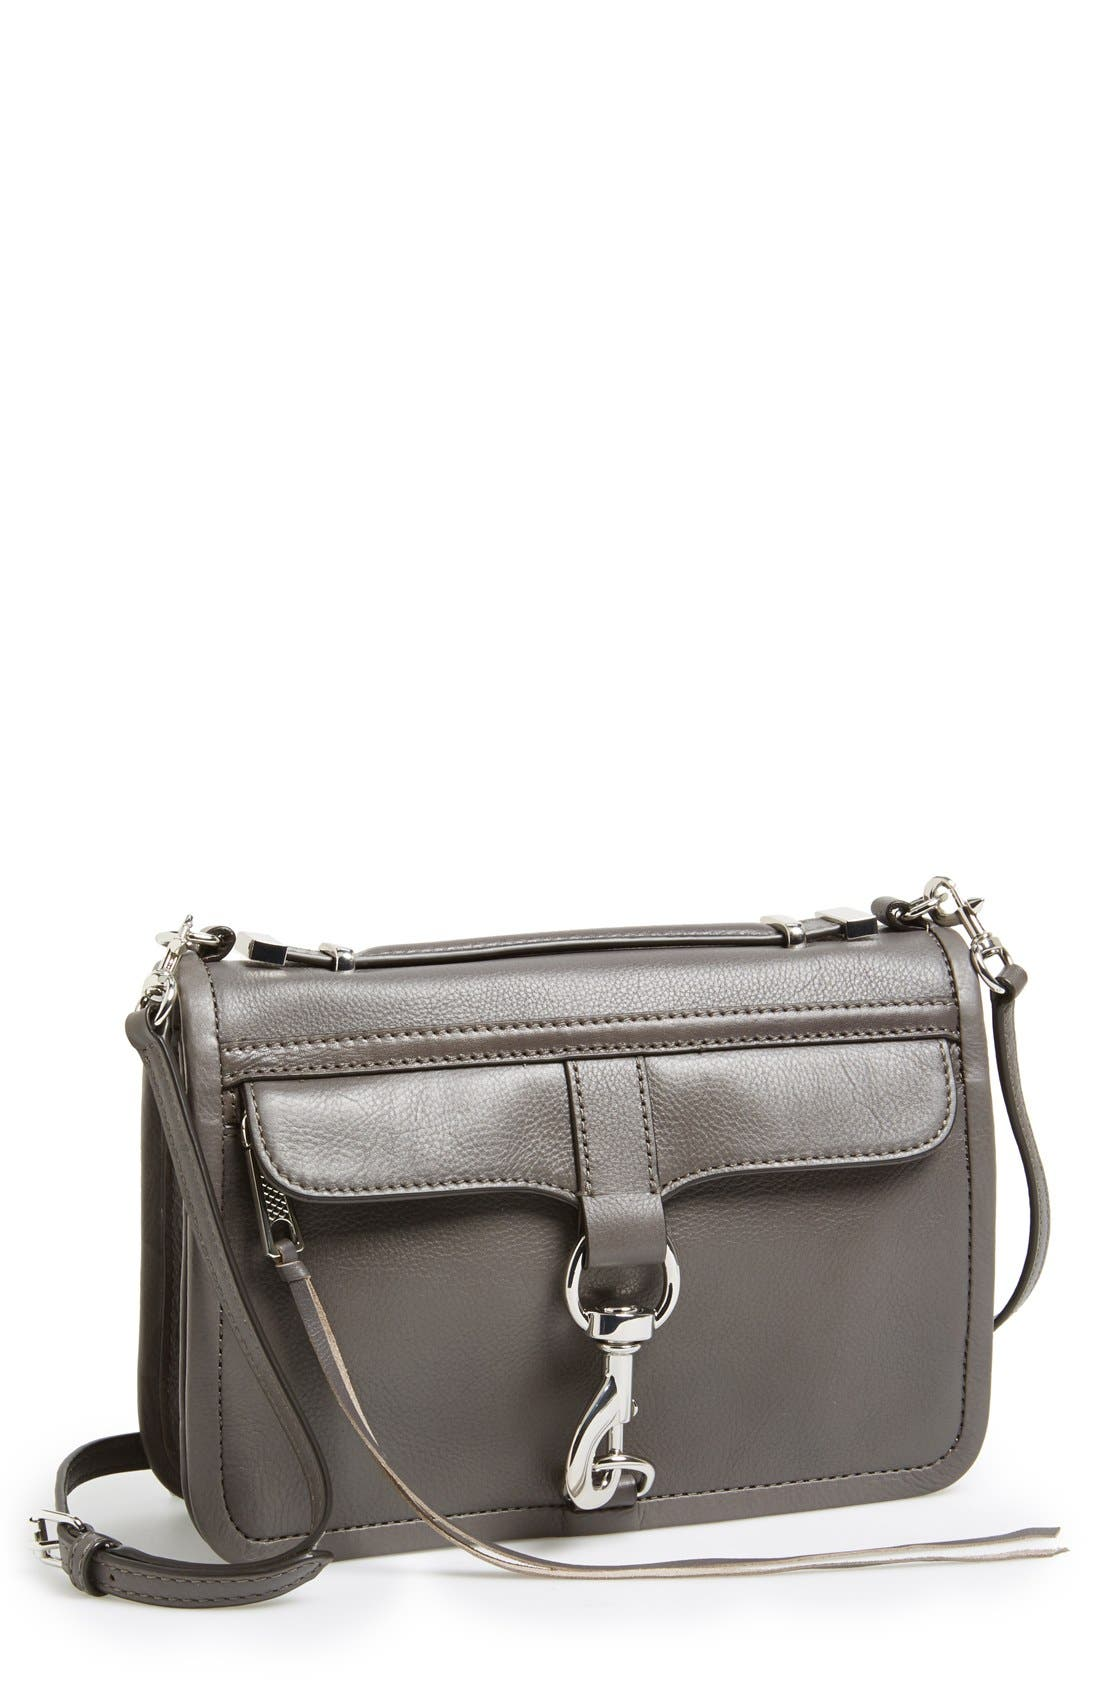 Alternate Image 1 Selected - Rebecca Minkoff 'Bowery' Convertible Crossbody Bag